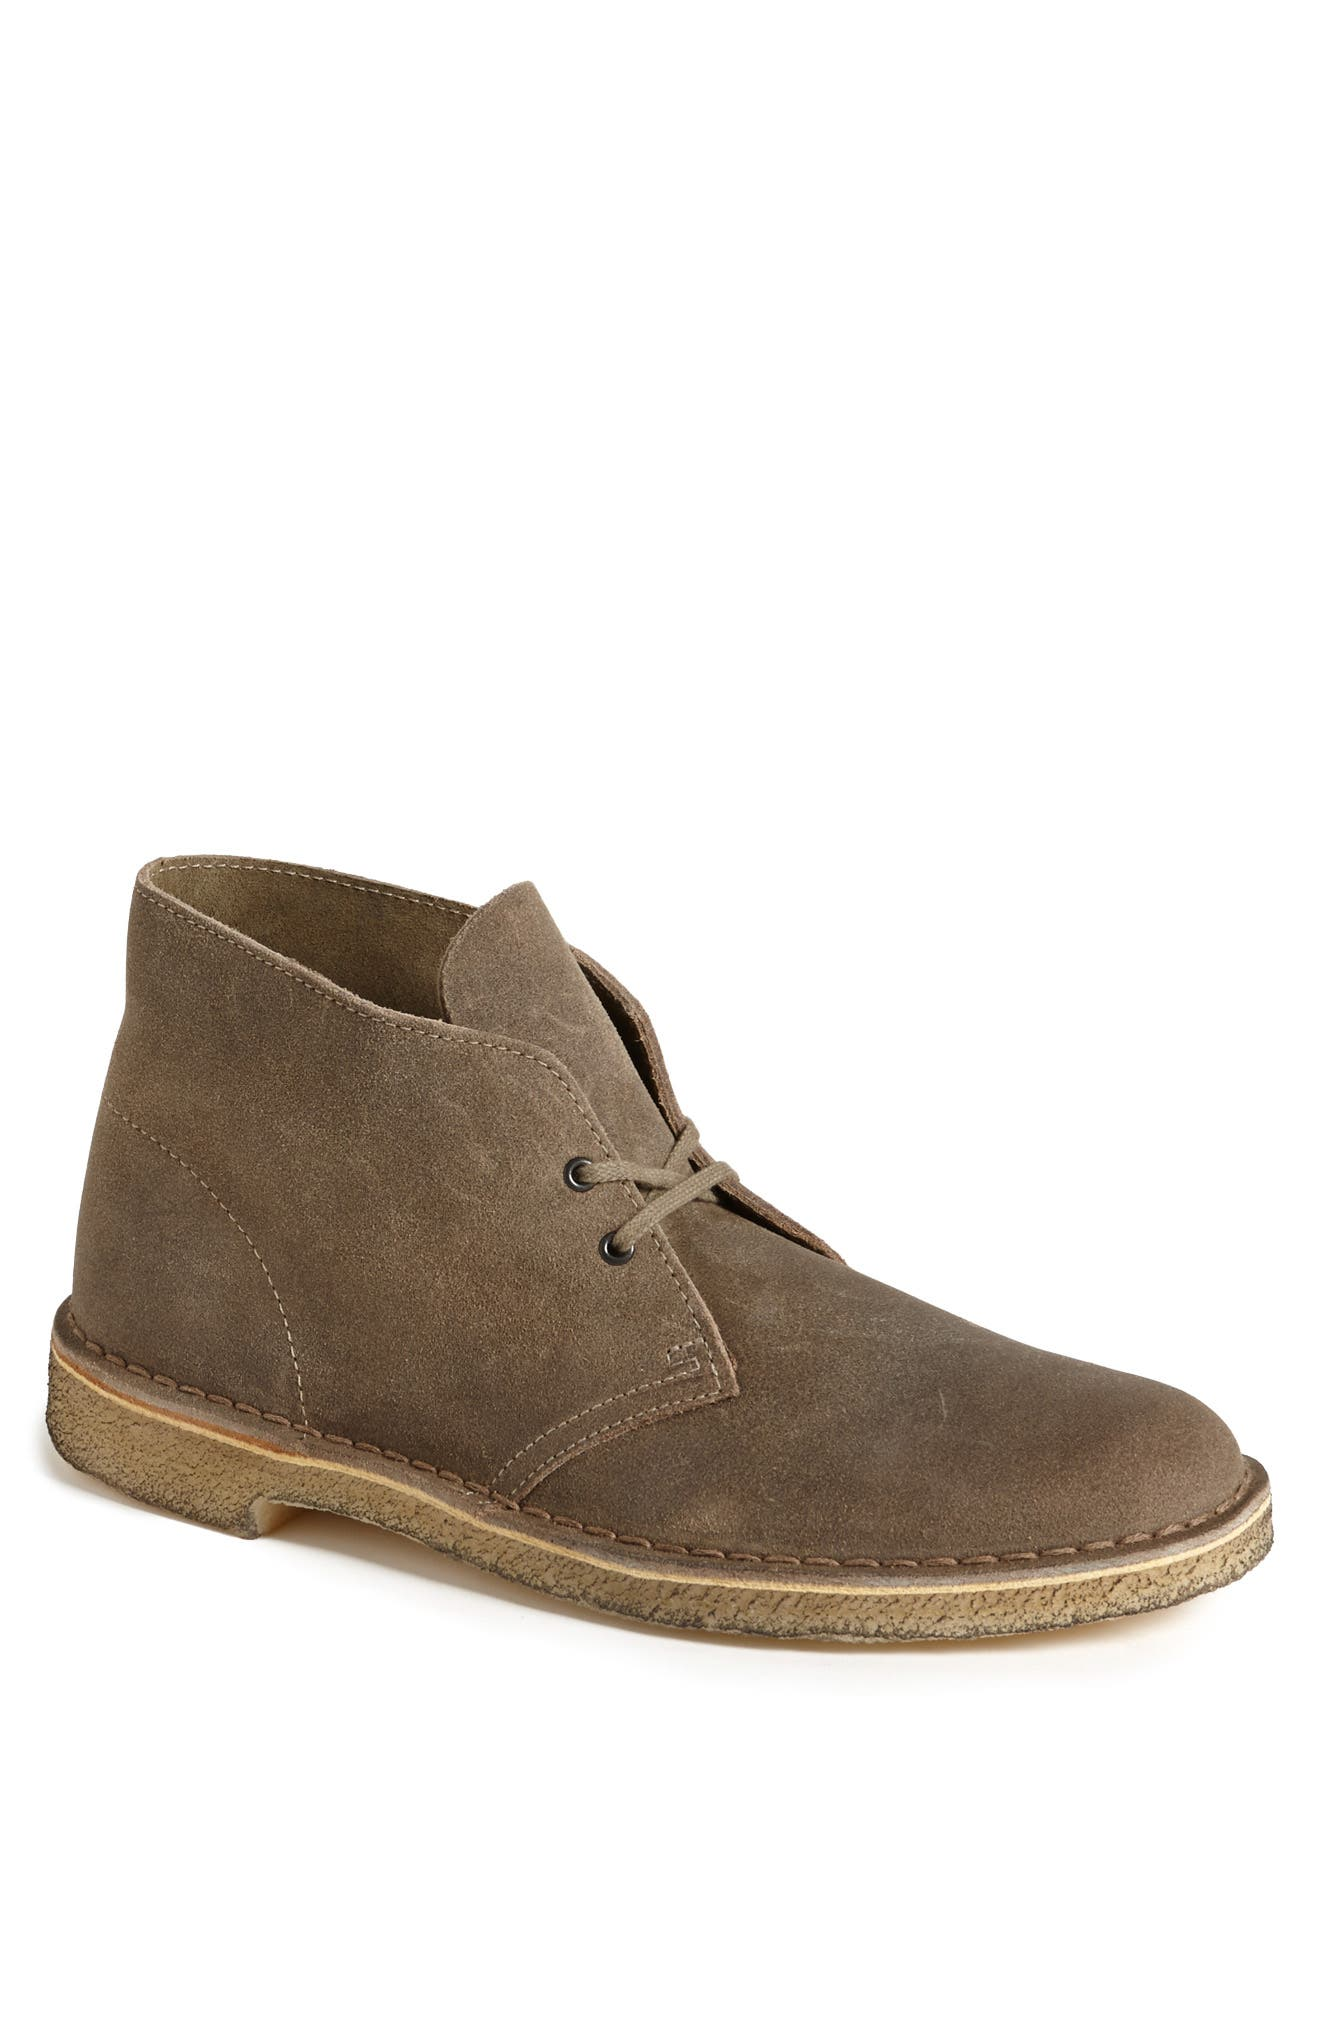 'Desert' Boot,                             Alternate thumbnail 2, color,                             TAUPE DISTRESSED SUEDE